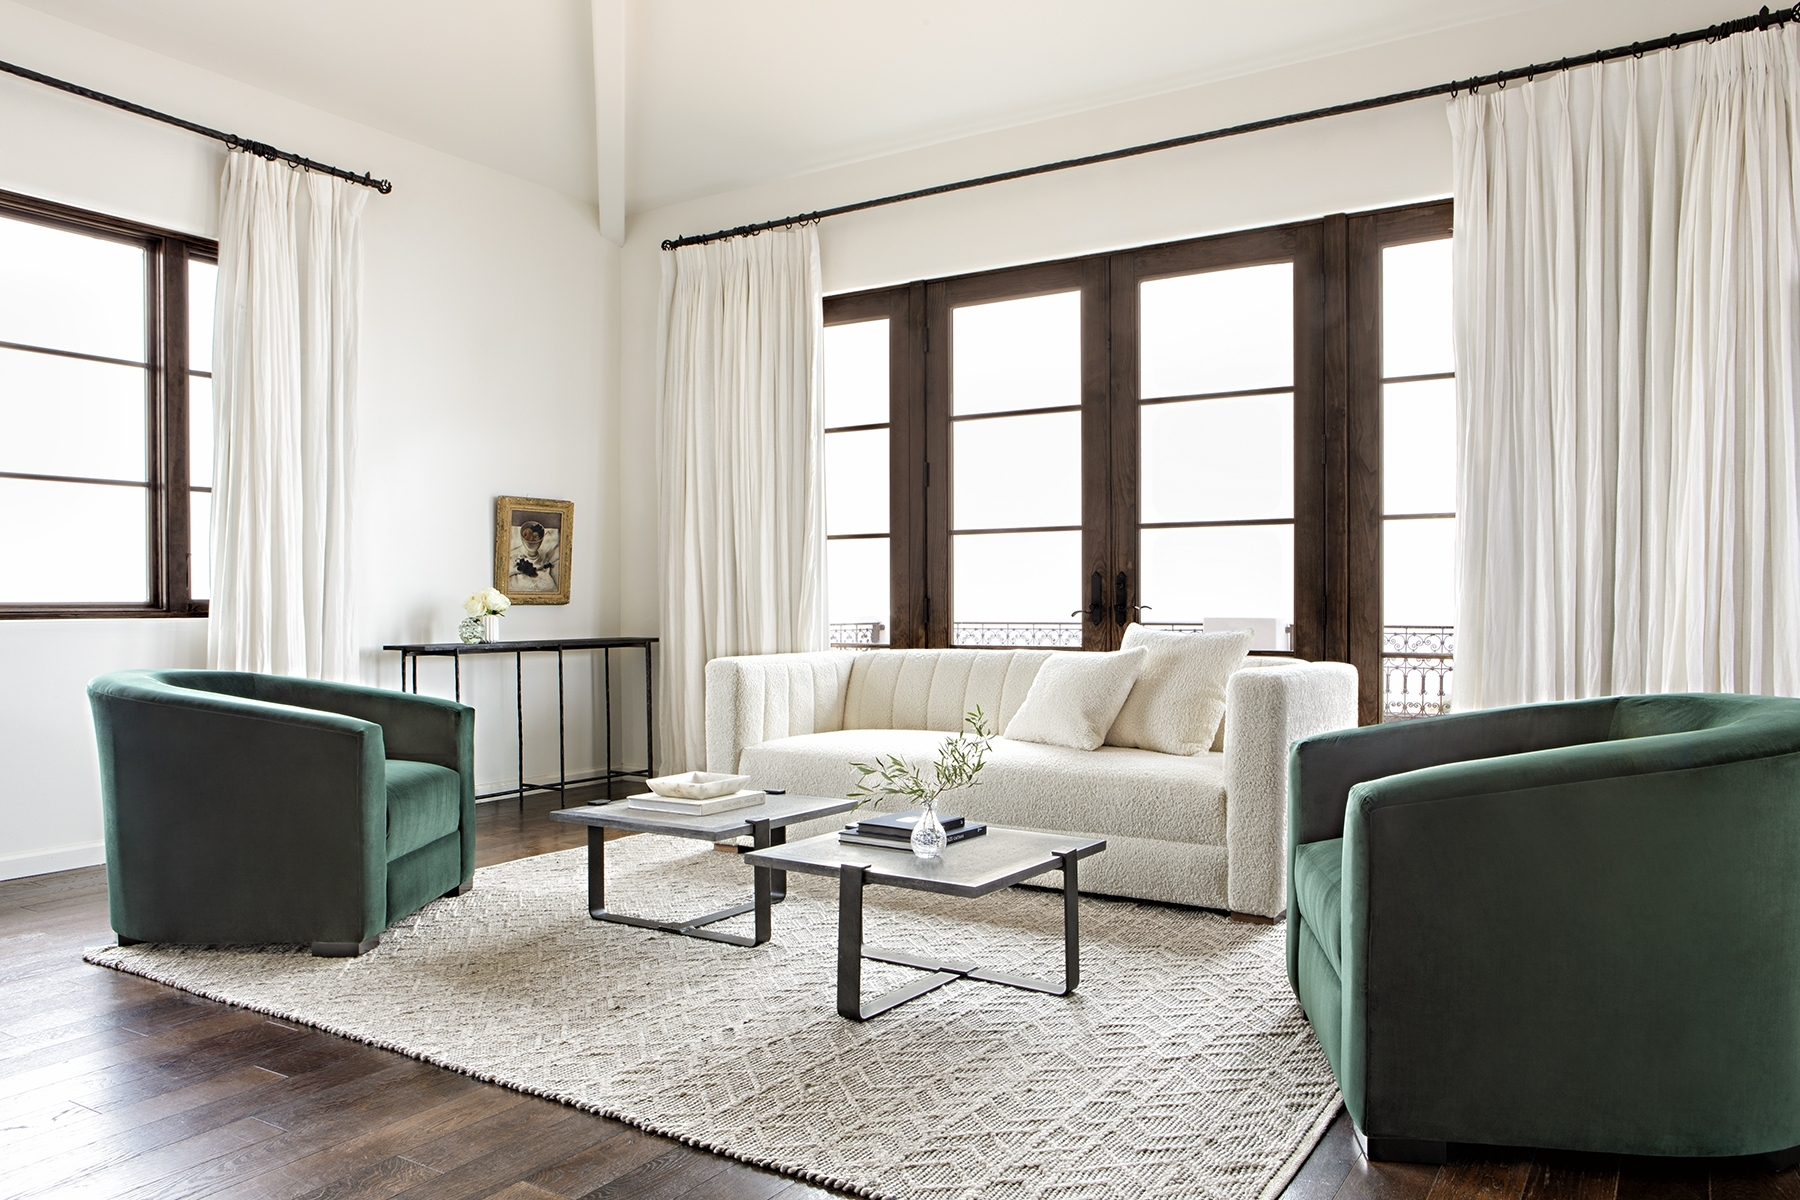 Nate Berkus & Jeremiah Brent's Newest Affordable Collection | Rue In Whitley 3 Piece Sectionals By Nate Berkus And Jeremiah Brent (Image 5 of 25)